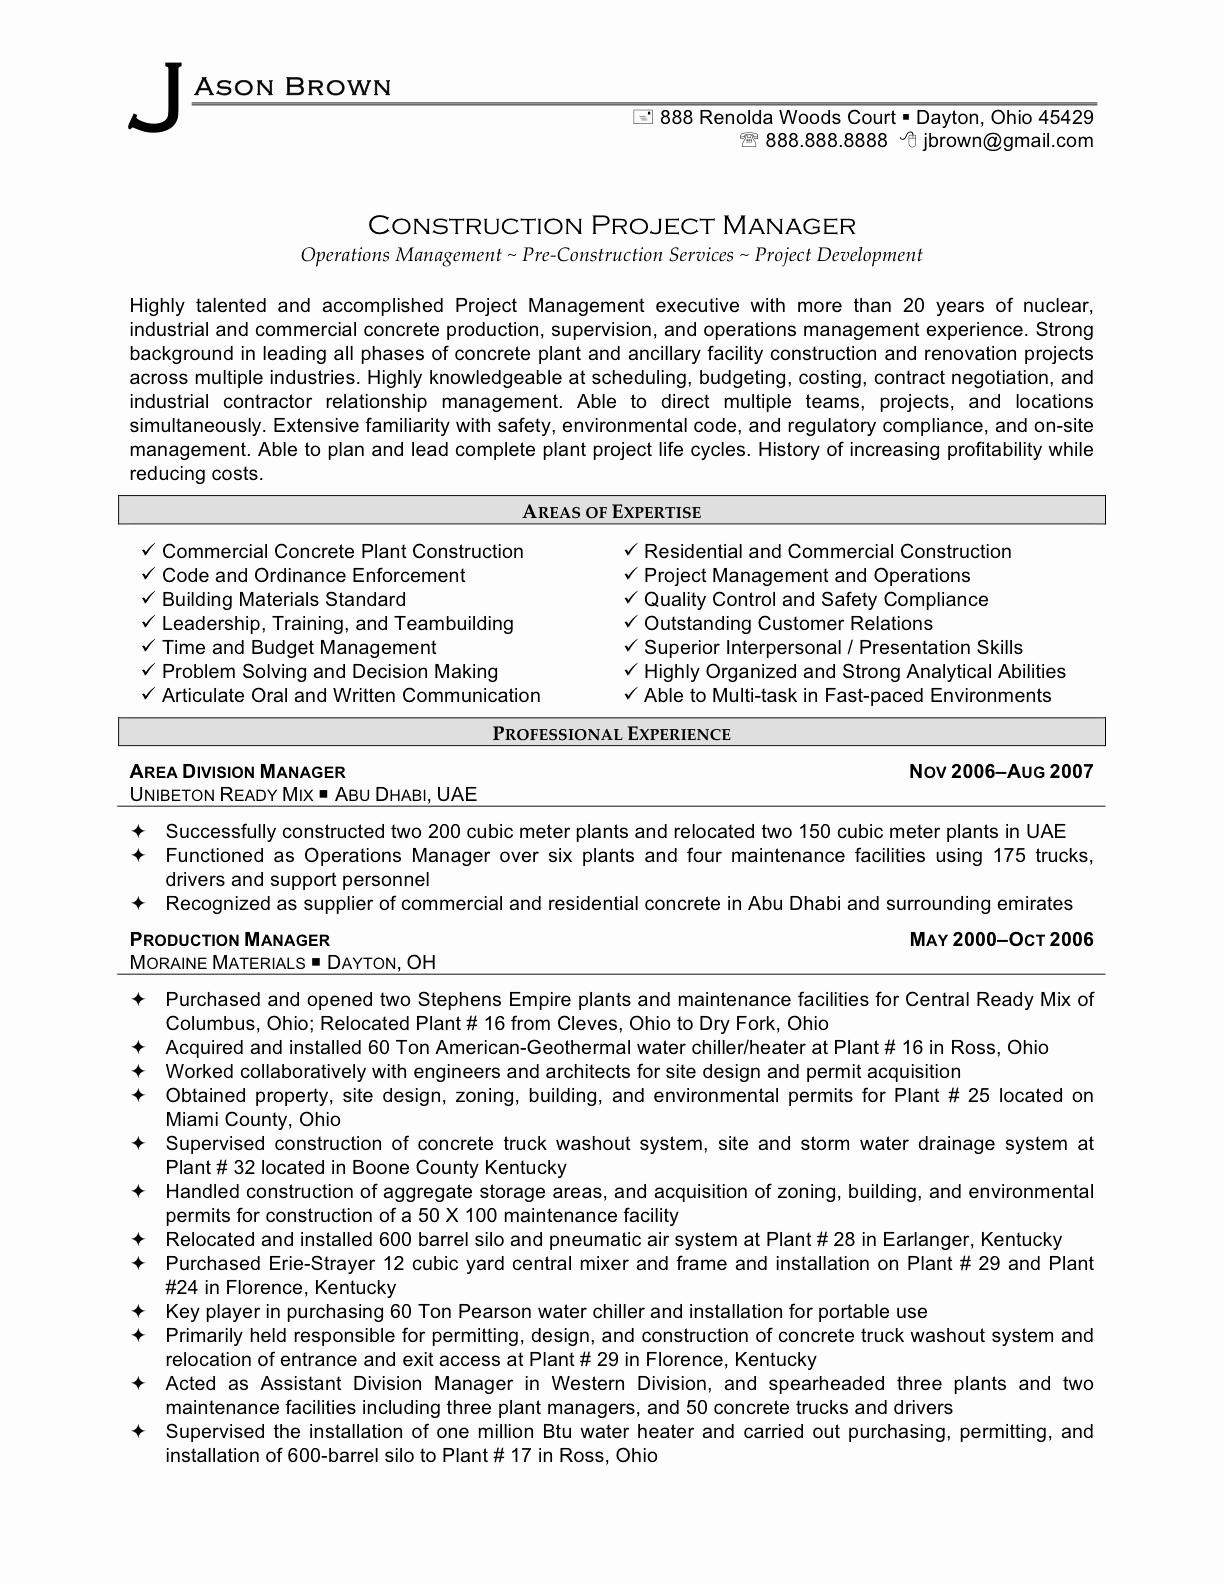 Construction Project Manager Resume Template - Project Coordinator Resume Samples Lovely Oil and Gas Resume